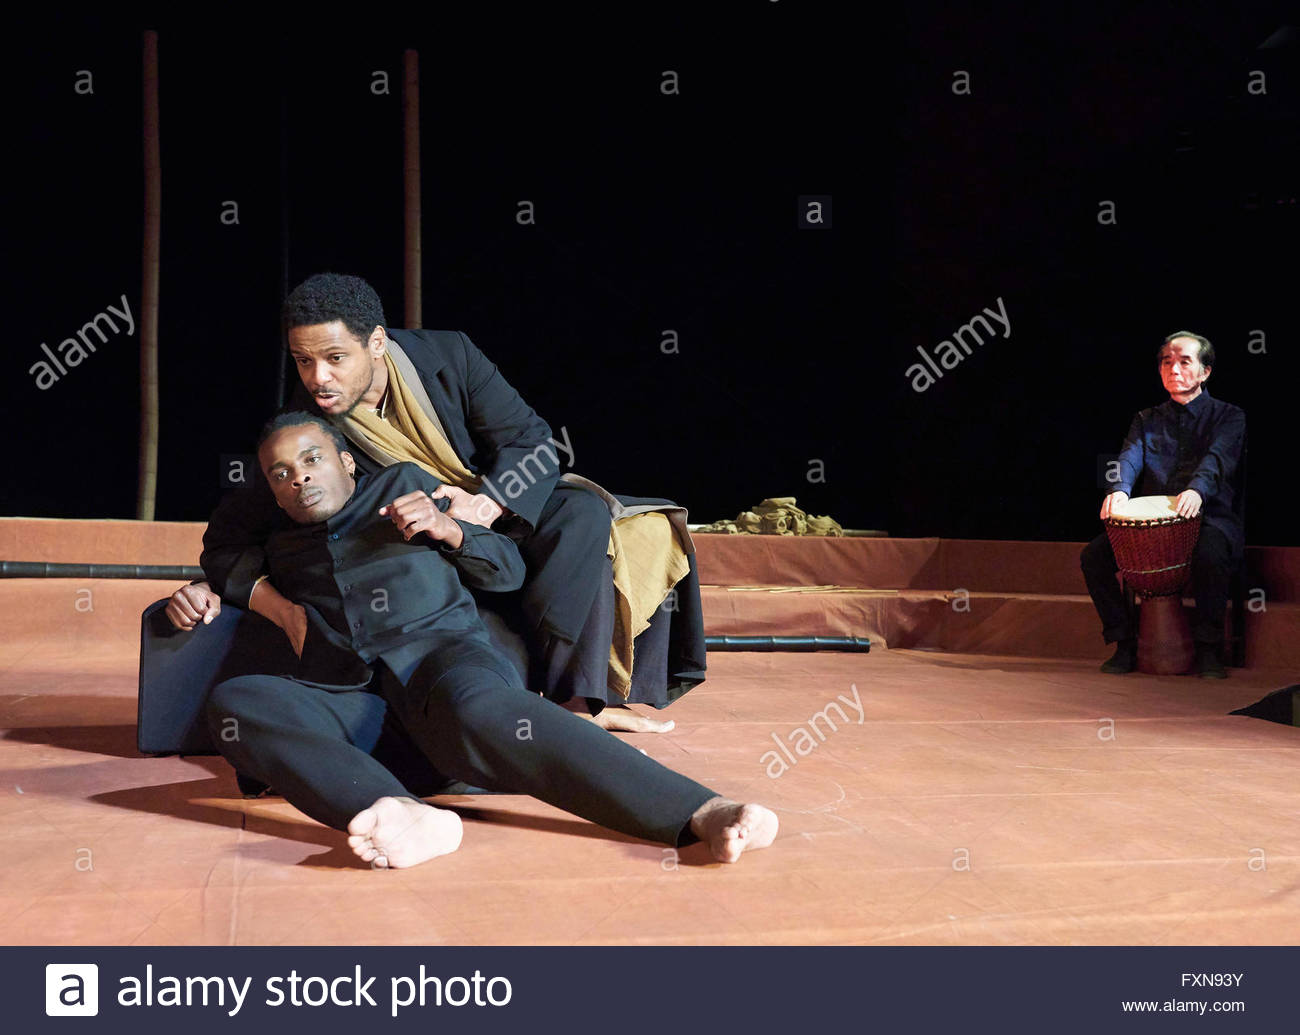 Battlefield. Based on the Mahabharata and the play by Jean Claude-Carriere. Adapted and directed by Peter Brook - Stock Image